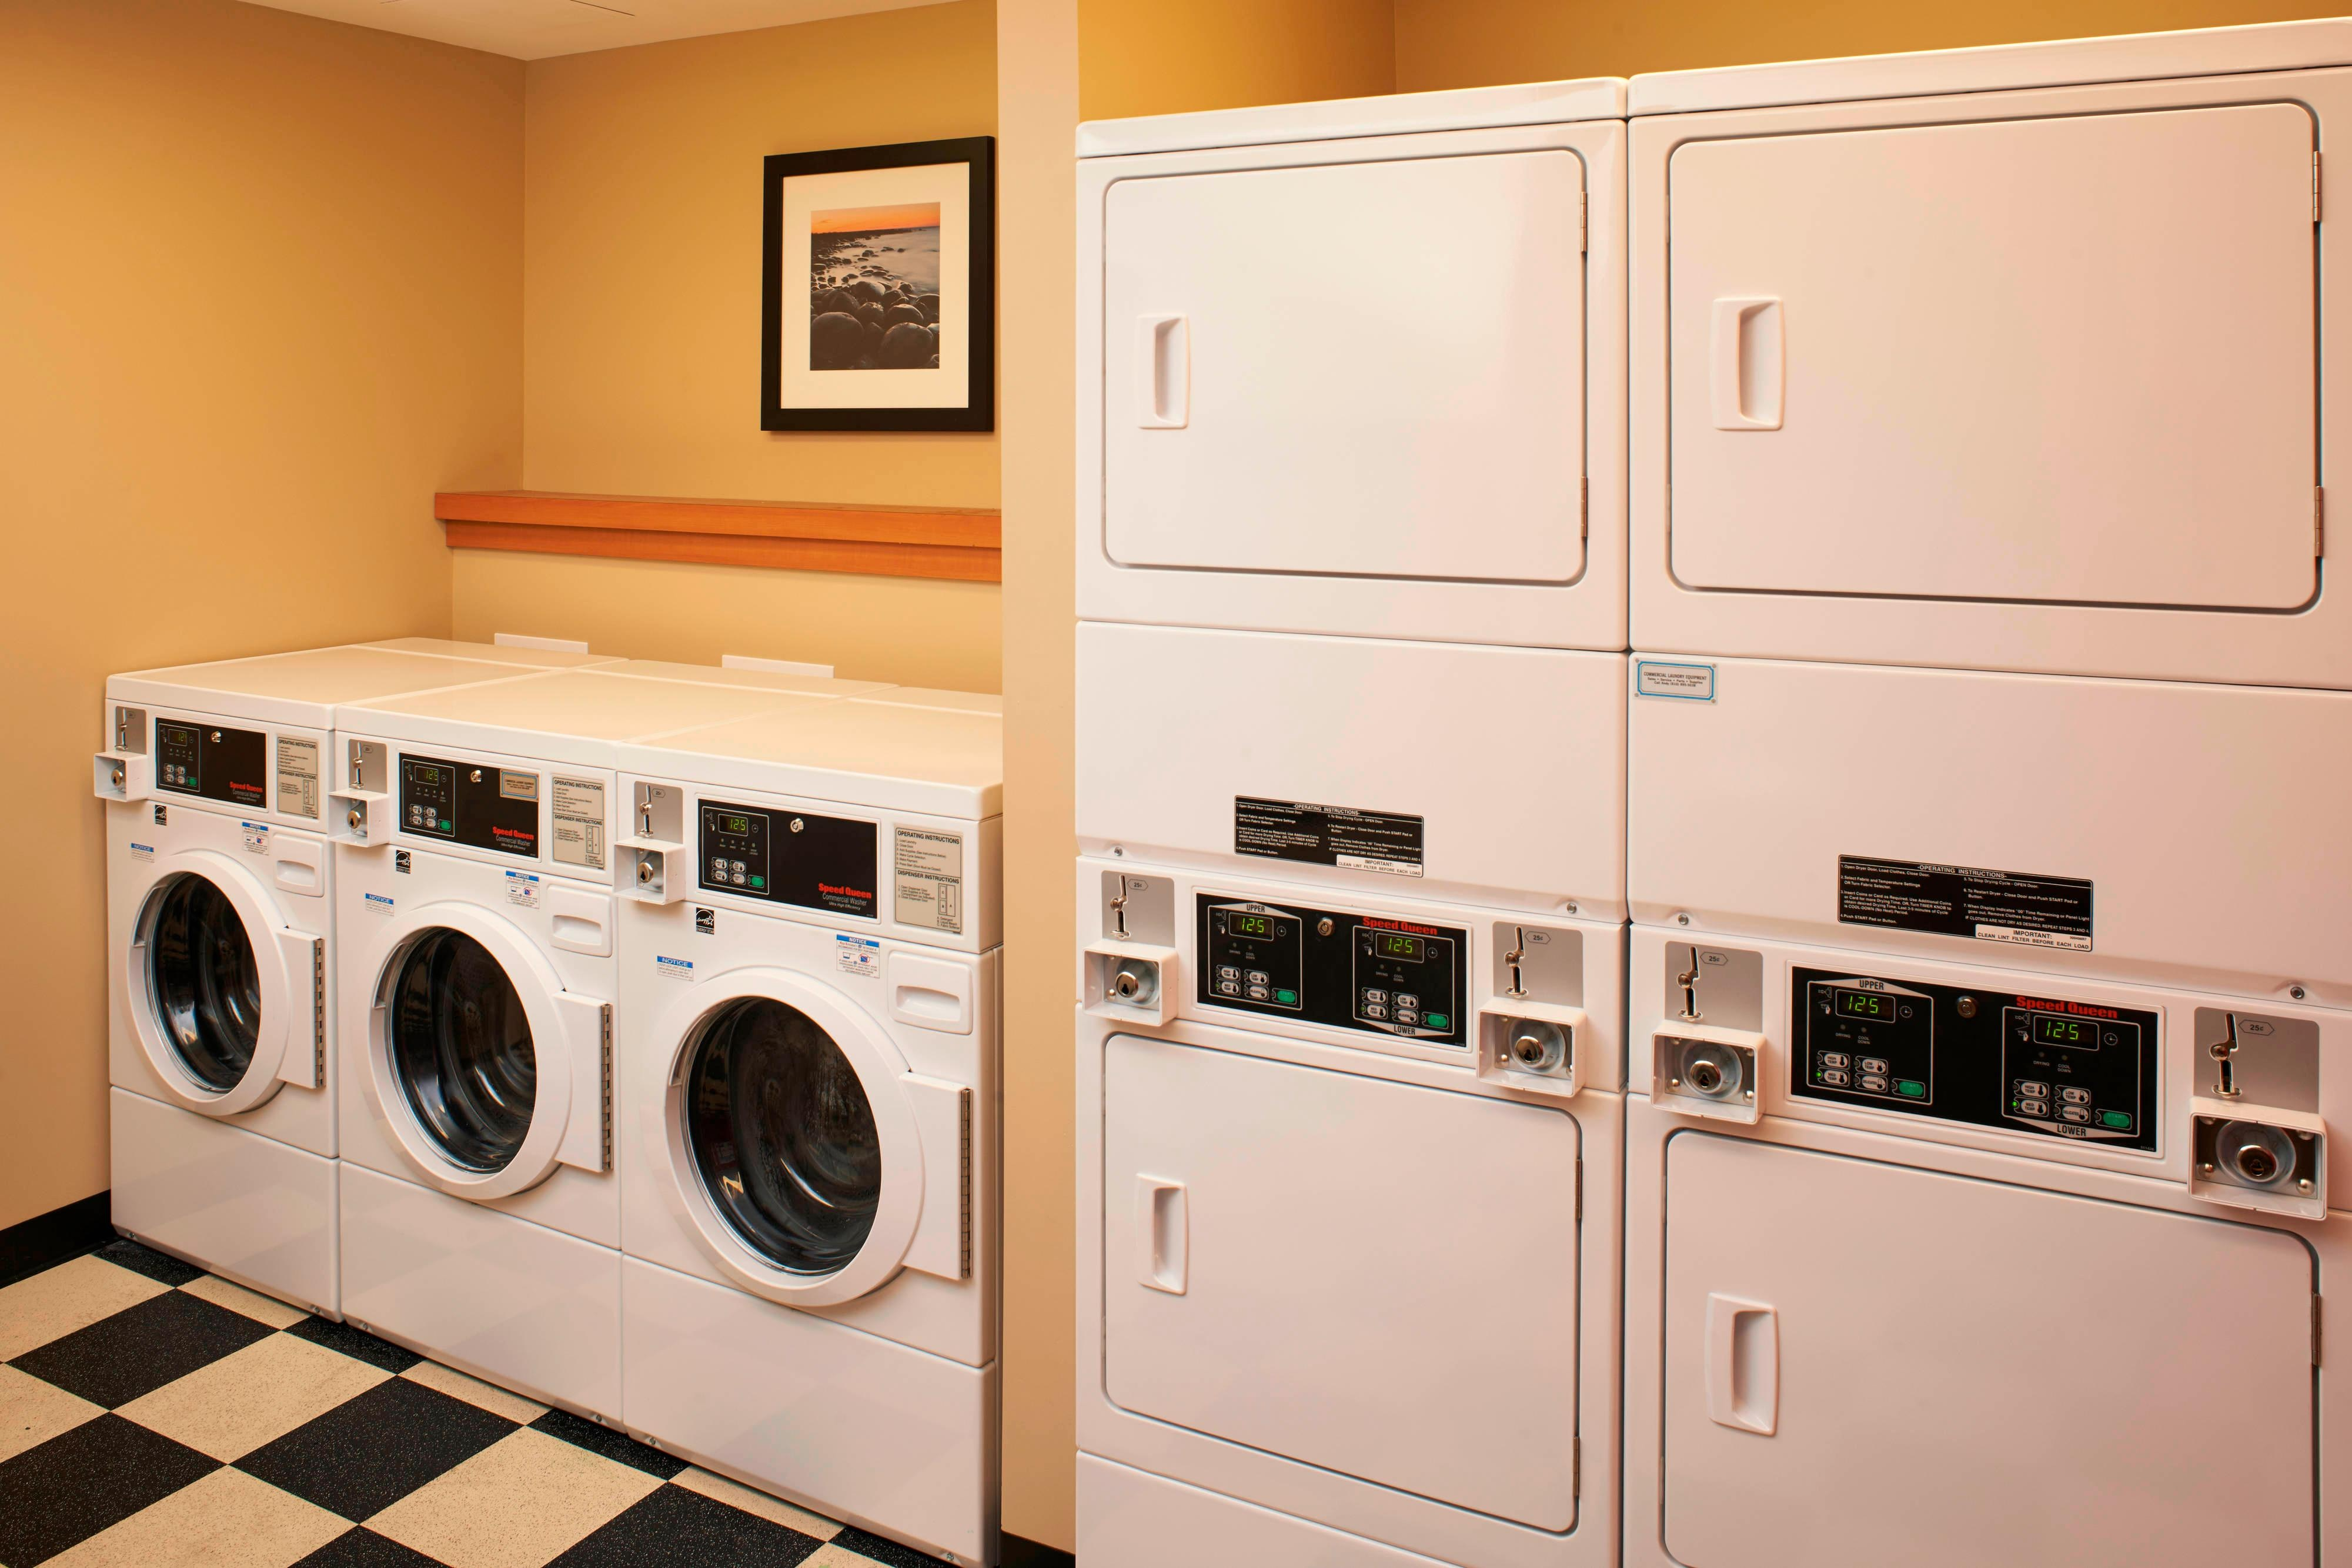 Saginaw hotel with laundry facilities